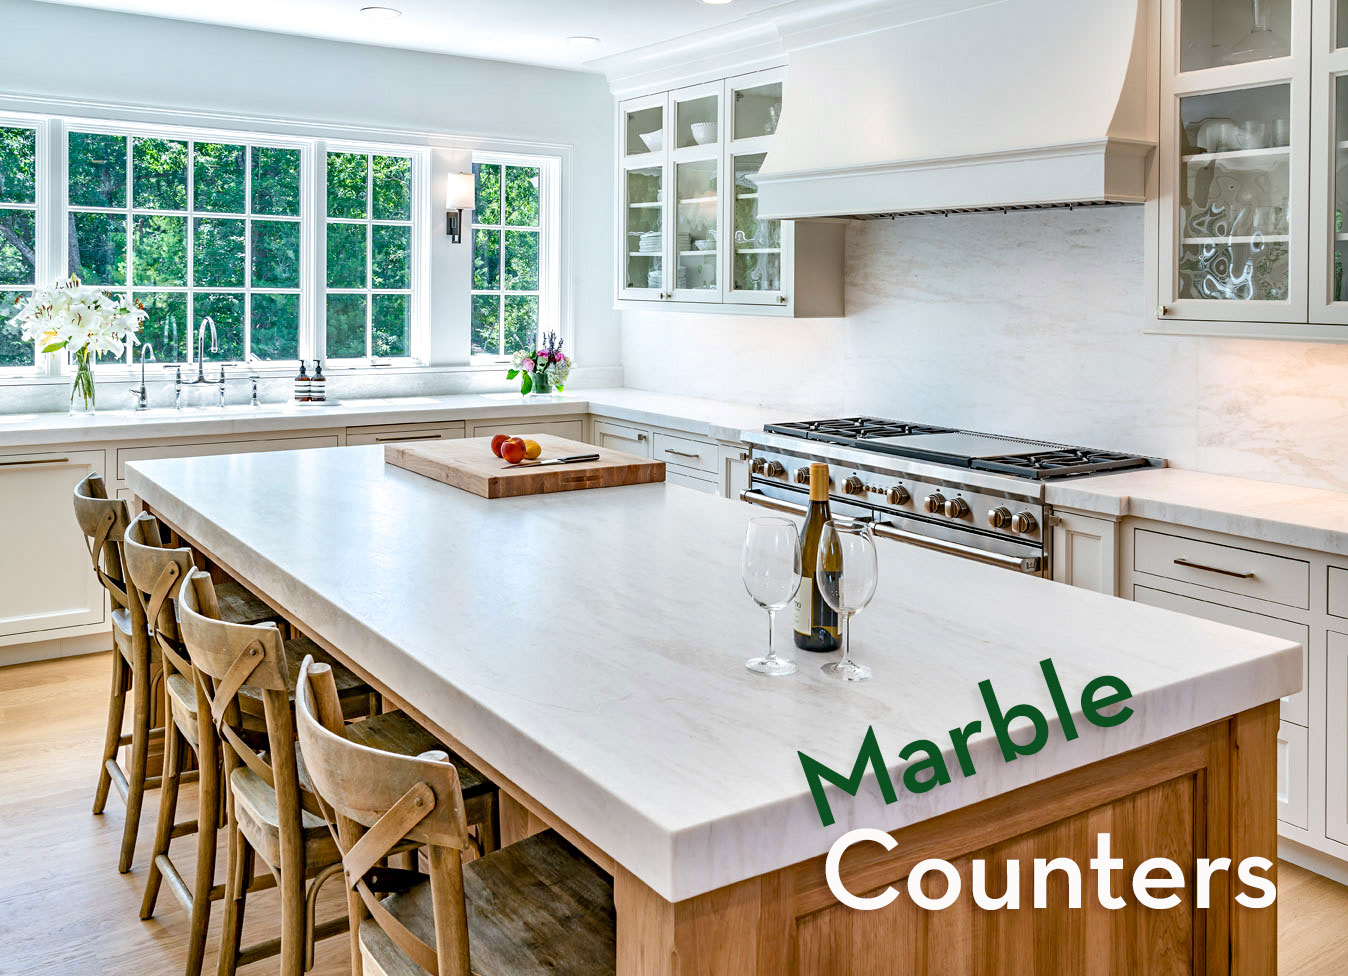 White Rhino Marble counter applications by Onyx Marble and Granite